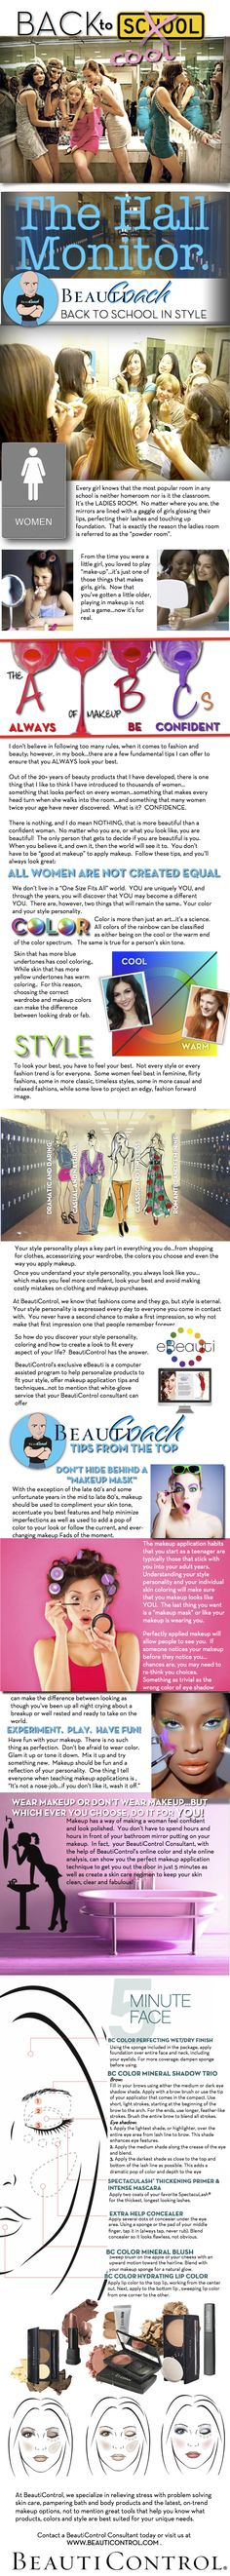 BeautiControl sends you back to school in style.  www.beauticontrol.com